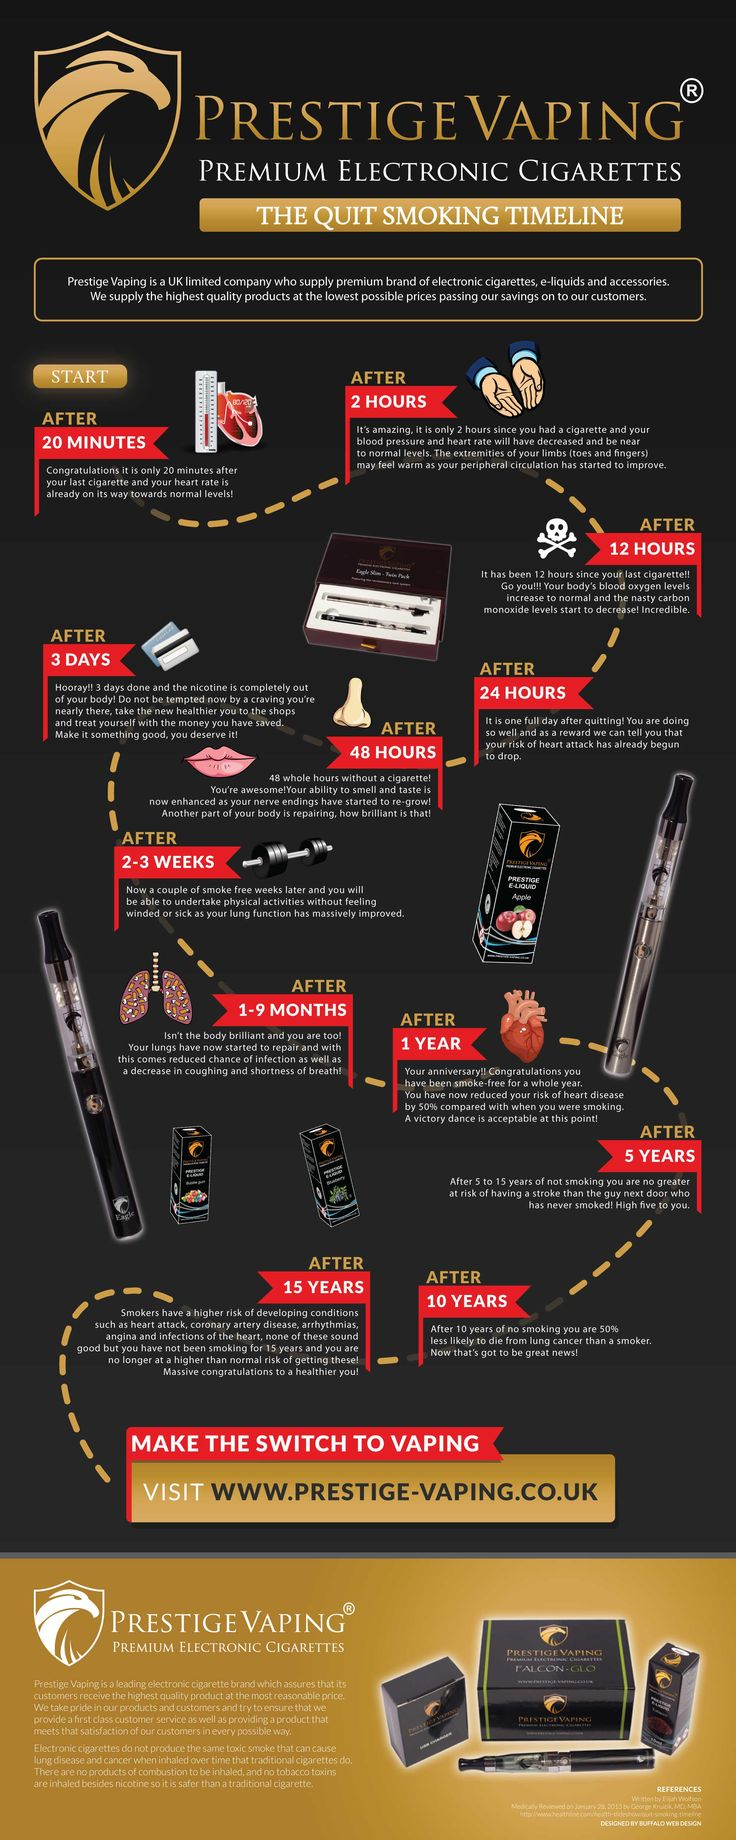 How your body repairs after quitting smoking – timeline infographic